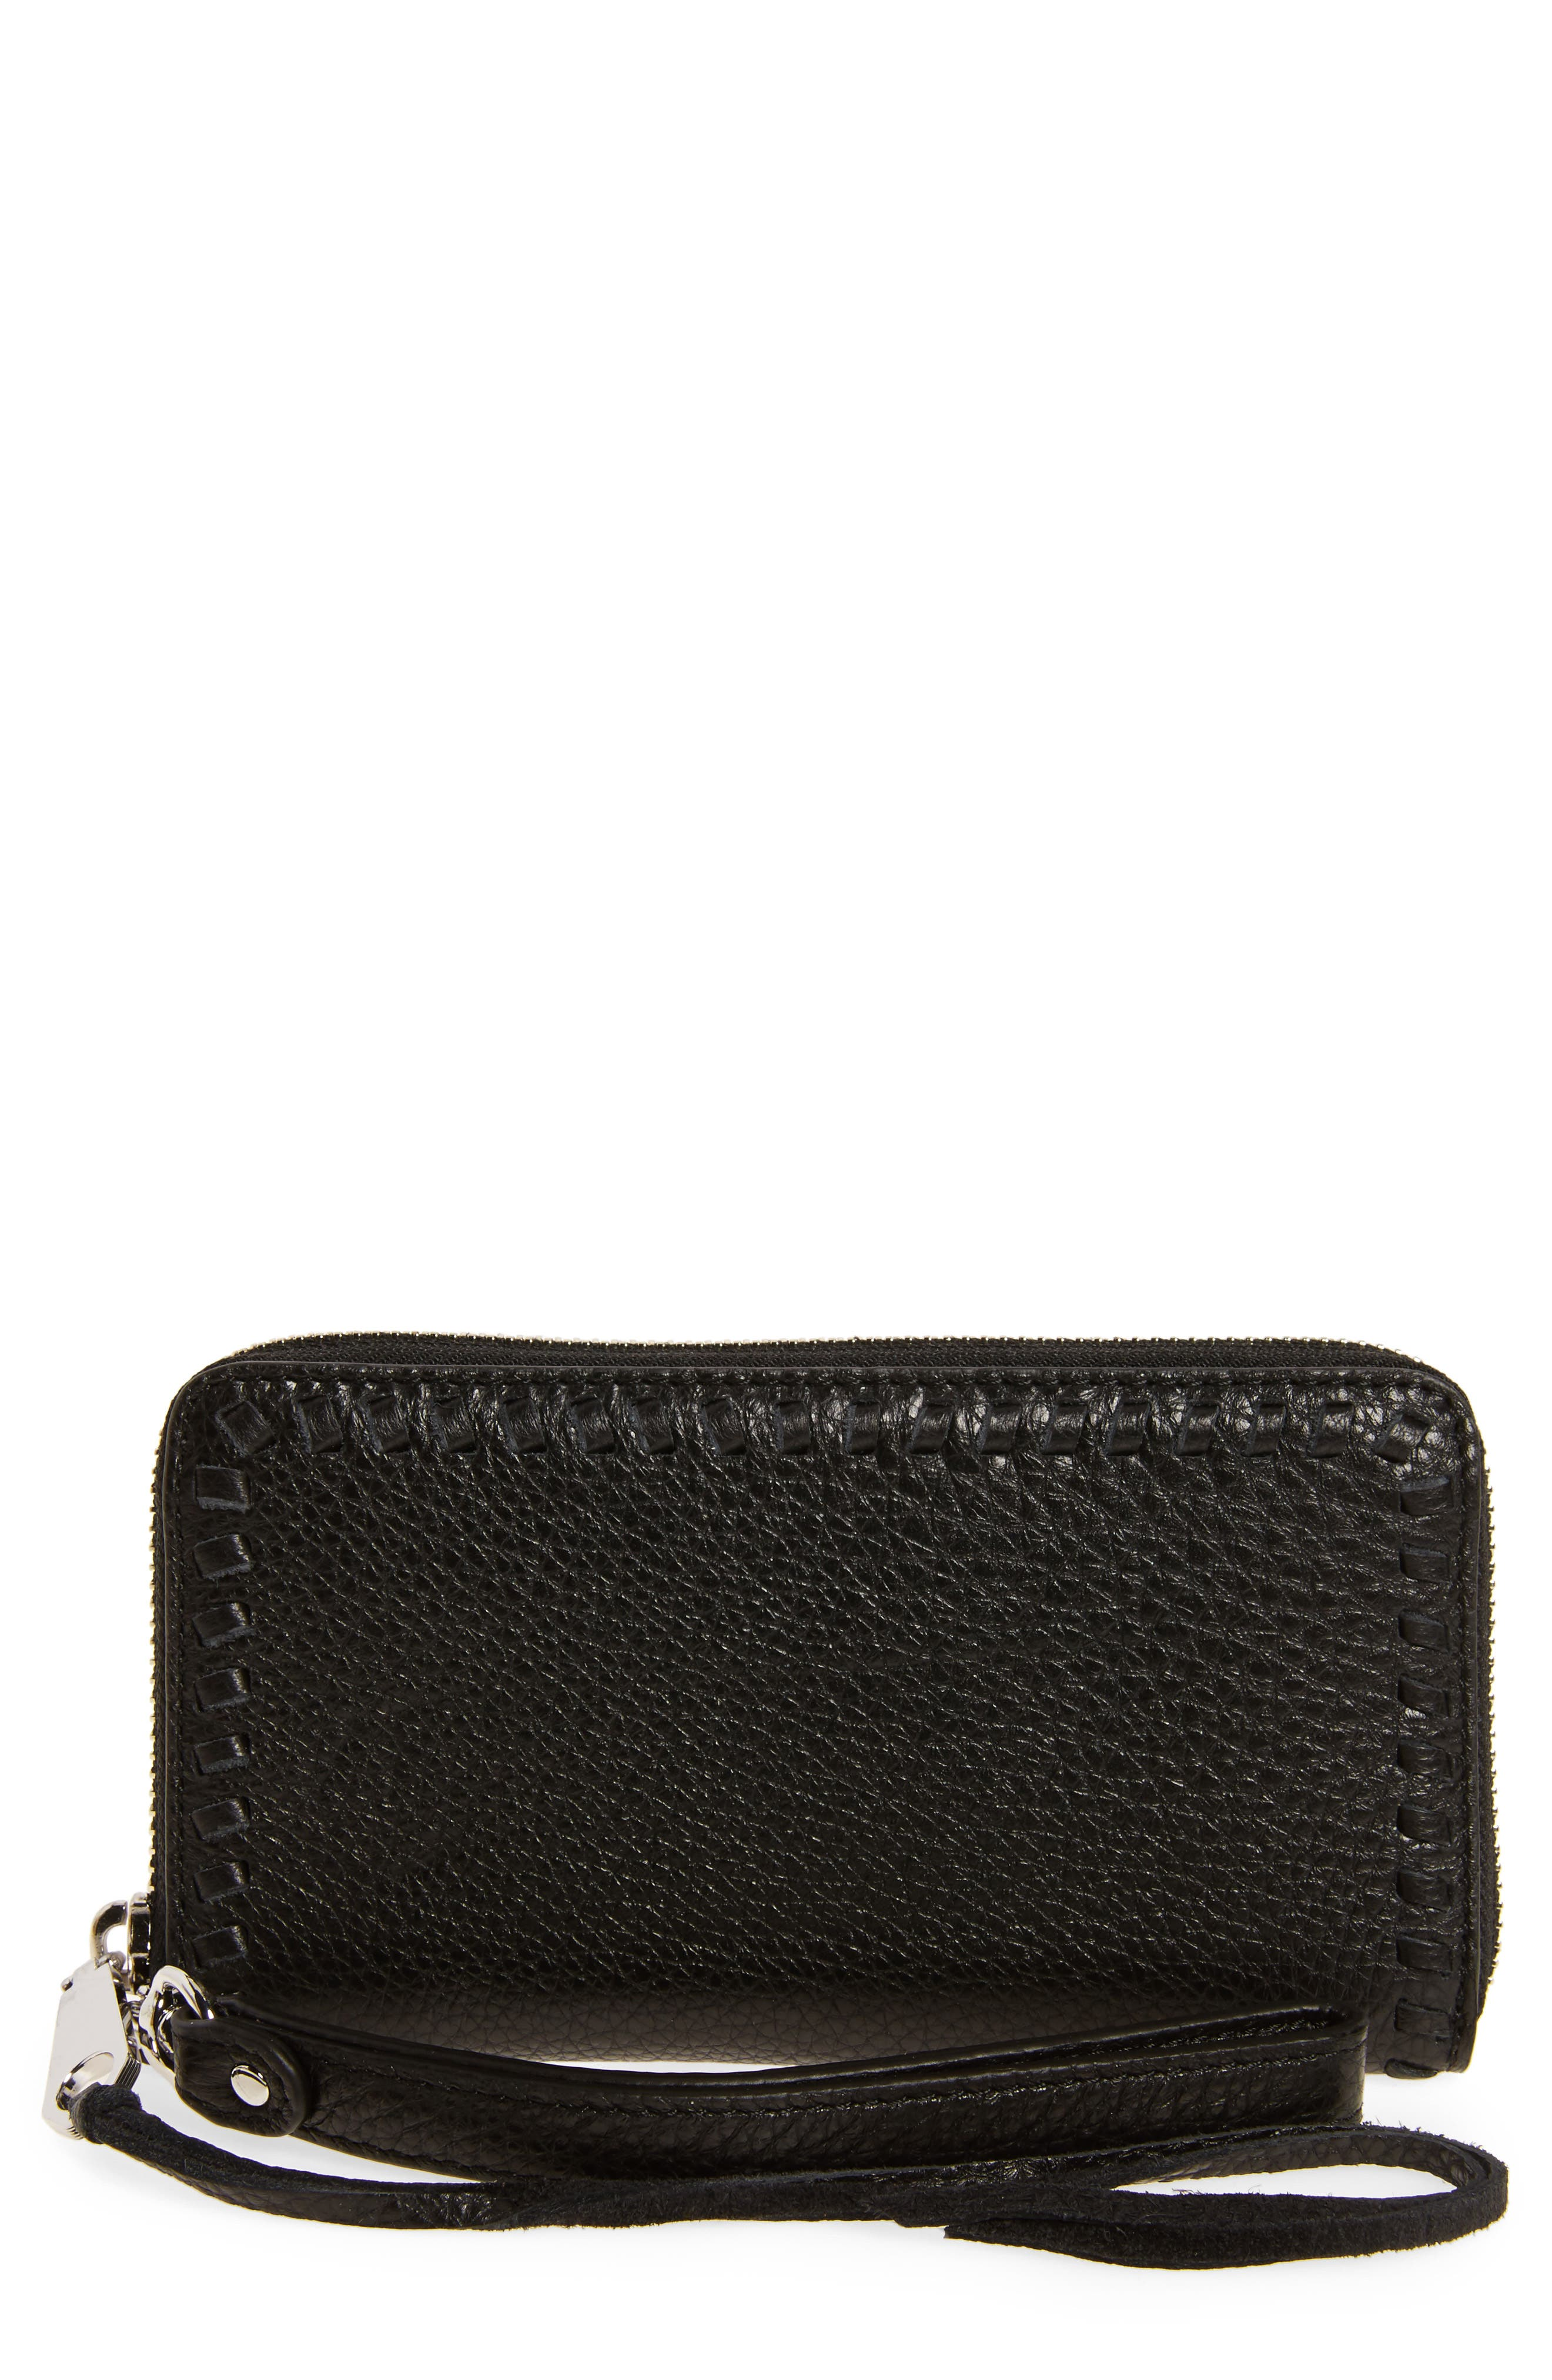 Main Image - Rebecca Minkoff Vanity Leather Phone Wallet